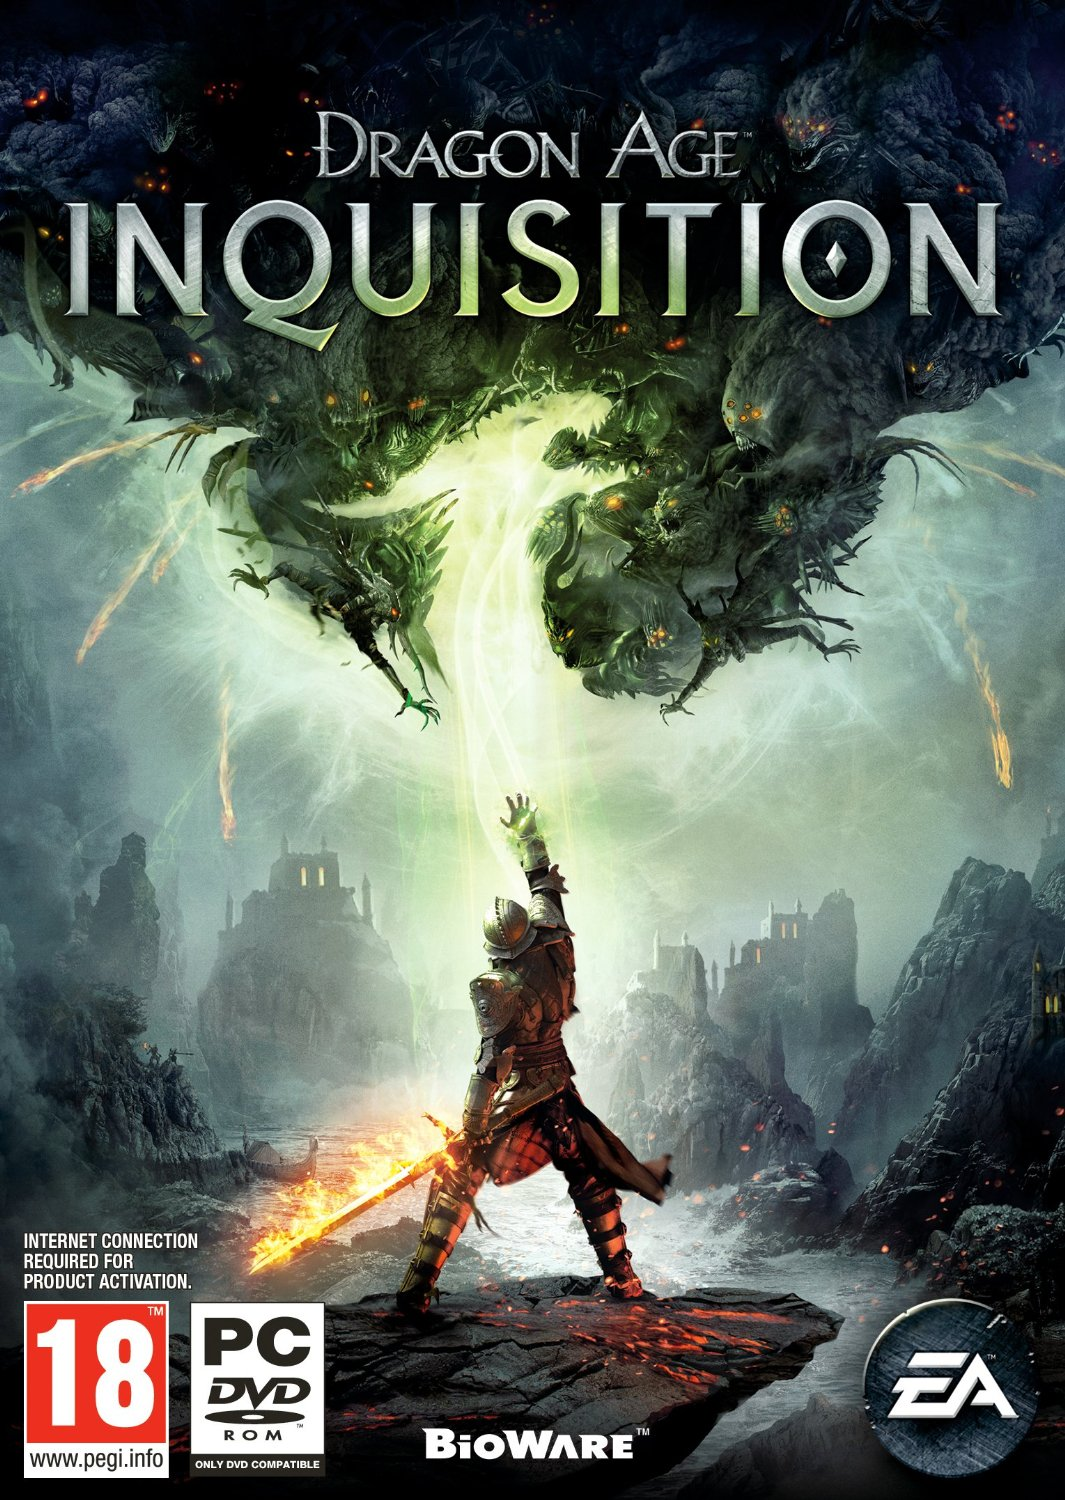 http://uupload.ir/files/exue_dragon-age-inquisition-pc-cover-large.jpg